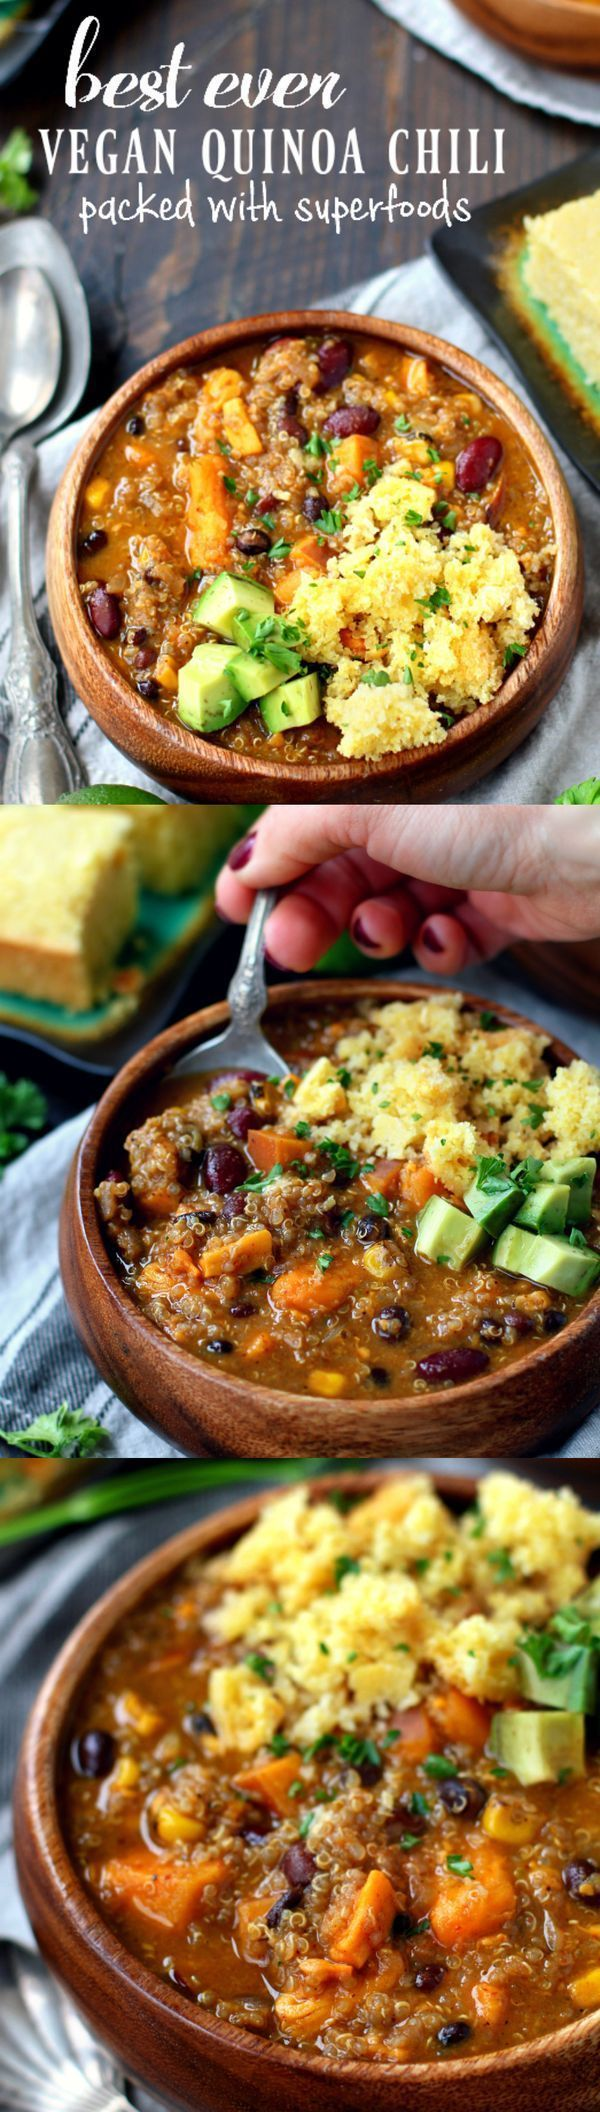 Photo of Best Ever Vegan Quinoa Chili – Kim's Cravings